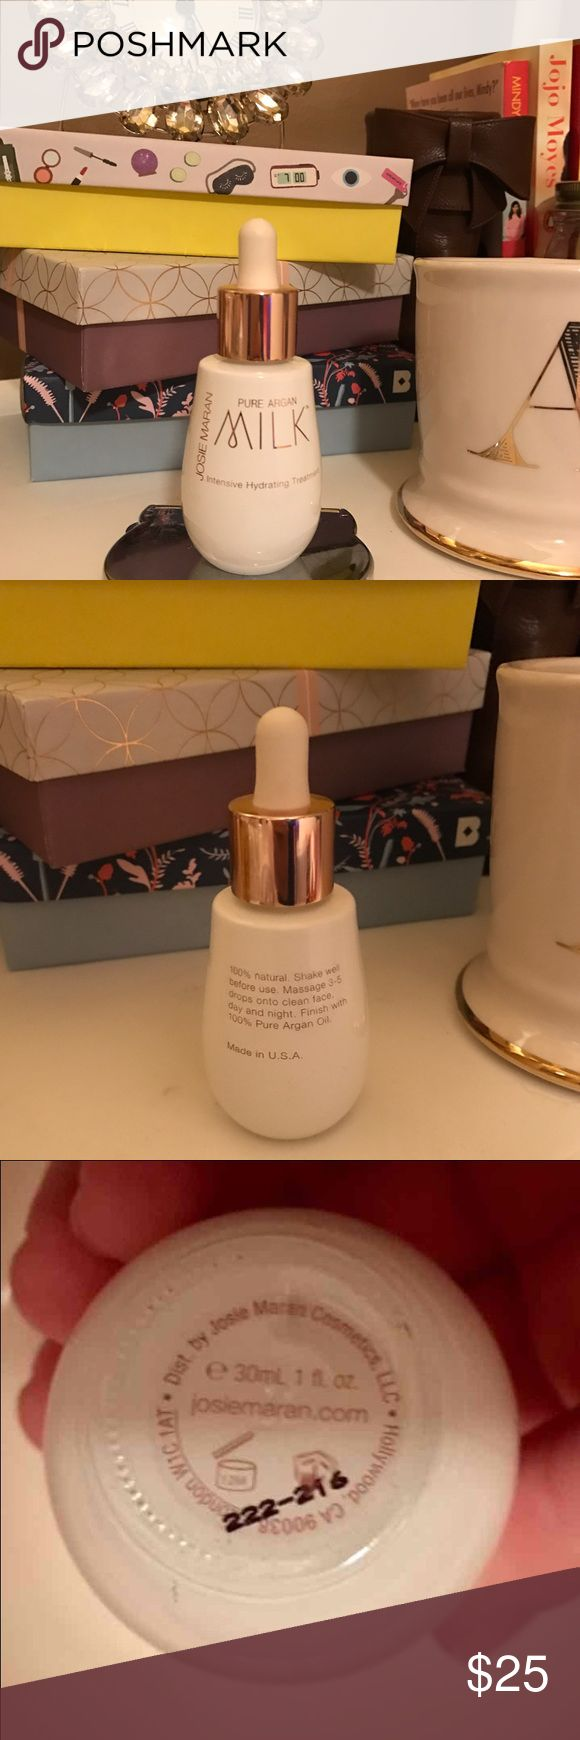 Josie Maran 100% Pure Argan Milk BRAND NEW Bought from QVC   What it is: A 100 percent natural, emulsifier-free, hydrating treatment serum.  What it is formulated to do This revolutionary treatment serum pairs the deep hydration of purified water with skin-rejuvenating micro-droplets of Josie's 100% Pure Argan Oil. Lightweight yet super-intensive, Pure Argan Milk Intensive Hydrating Treatment penetrates deeply and absorbs quickly to fortify and repair skin for instant, long-lasting hydration…